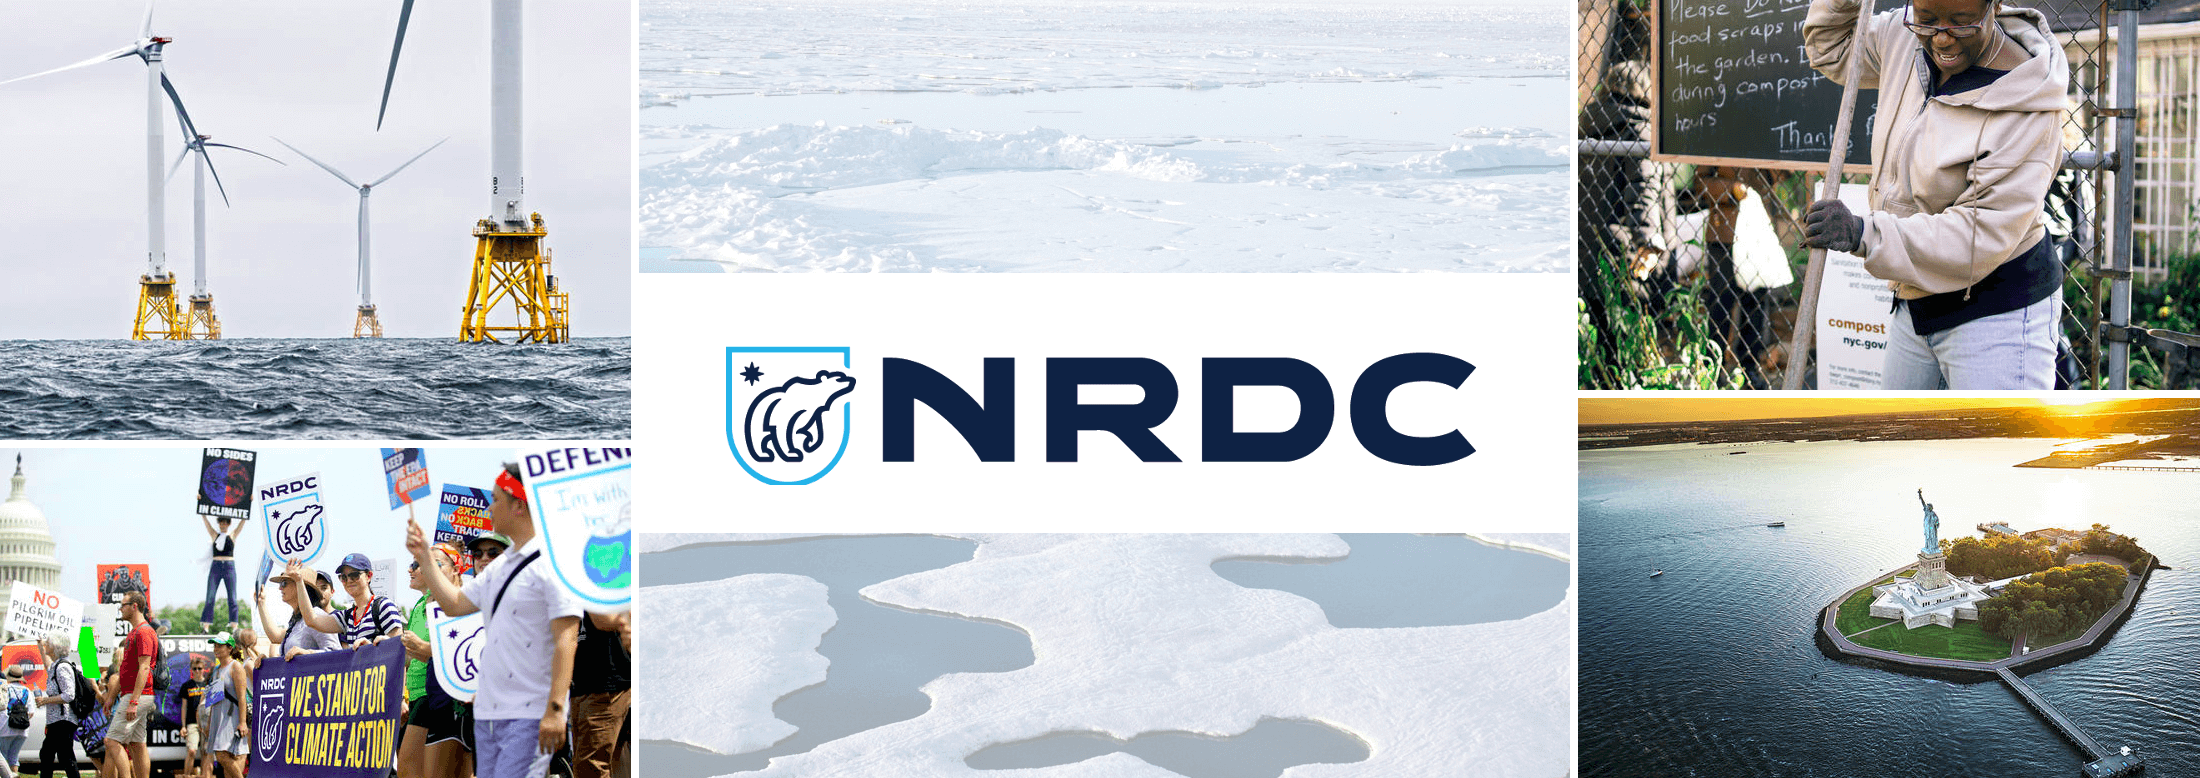 NRDC in the News Week of February 15, 2016 Highlights